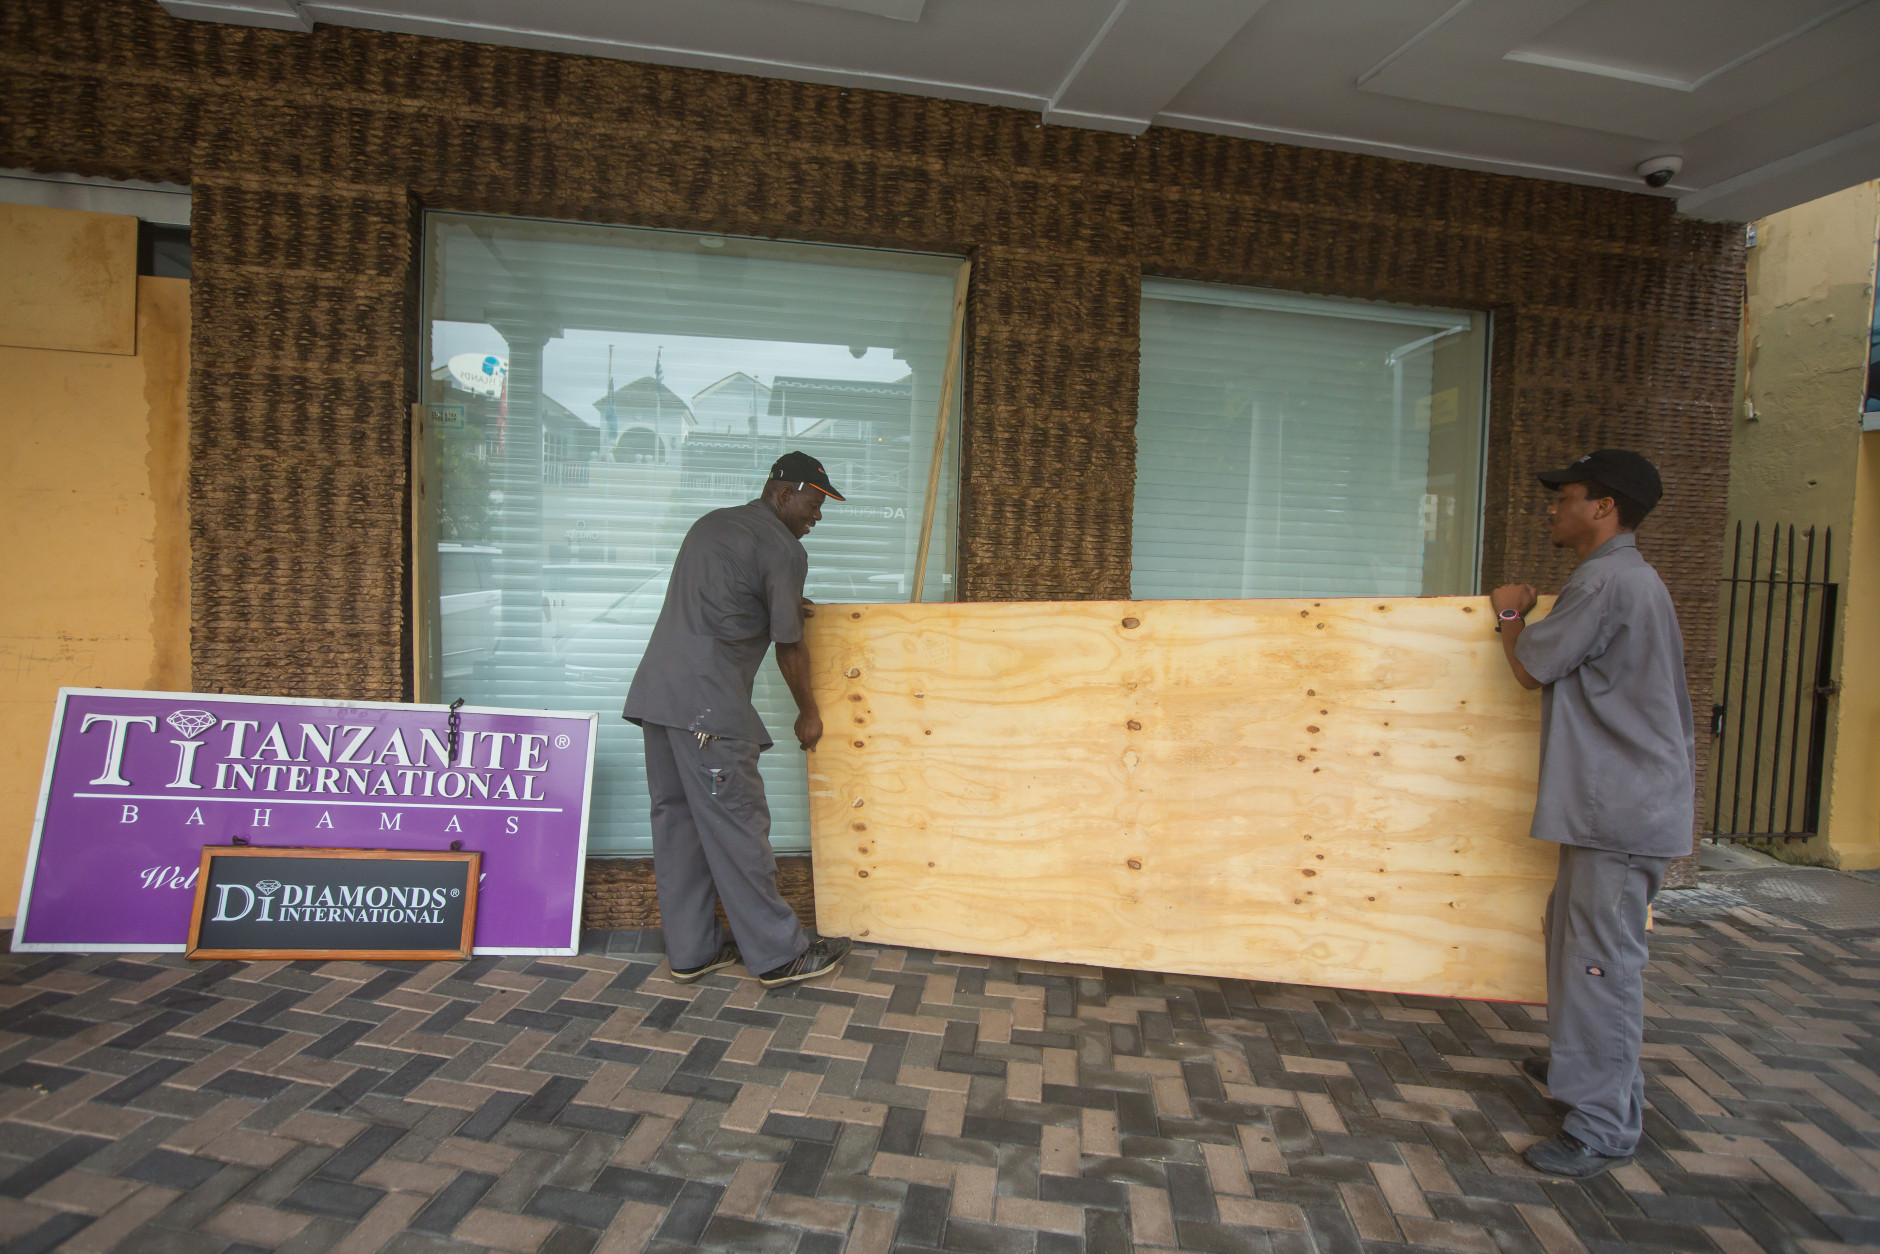 Perry Williams, 47, left, and Alaric Nixon, 28, carry a sheet of plywood as they cover the windows of the Diamond's International store, in preparation for the arrival of hurricane Joaquin in Nassau, Bahamas, Thursday, Oct. 1, 2015. Hurricane Joaquin unleashed heavy flooding as it roared through sparsely populated islands in the eastern Bahamas as a Category 4 storm, with forecasters warning it could grow even stronger before carving a path that would take it near the U.S. East Coast. (AP Photo/Tim Aylen)